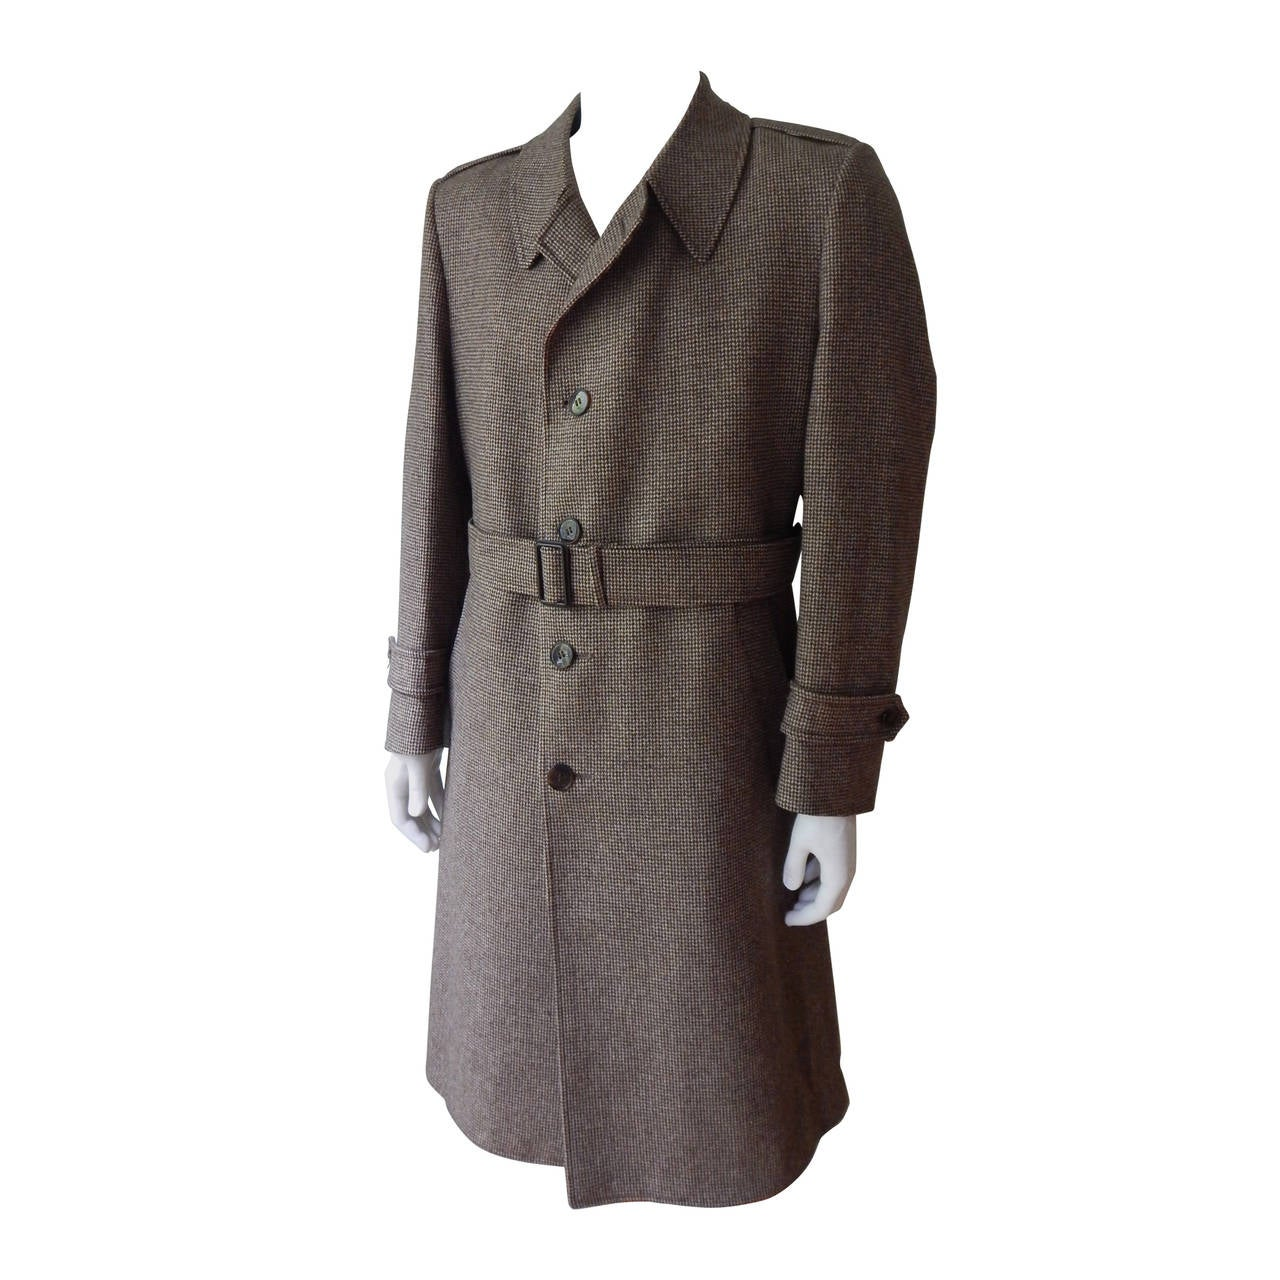 Yves Saint Laurent Mens Coat 1